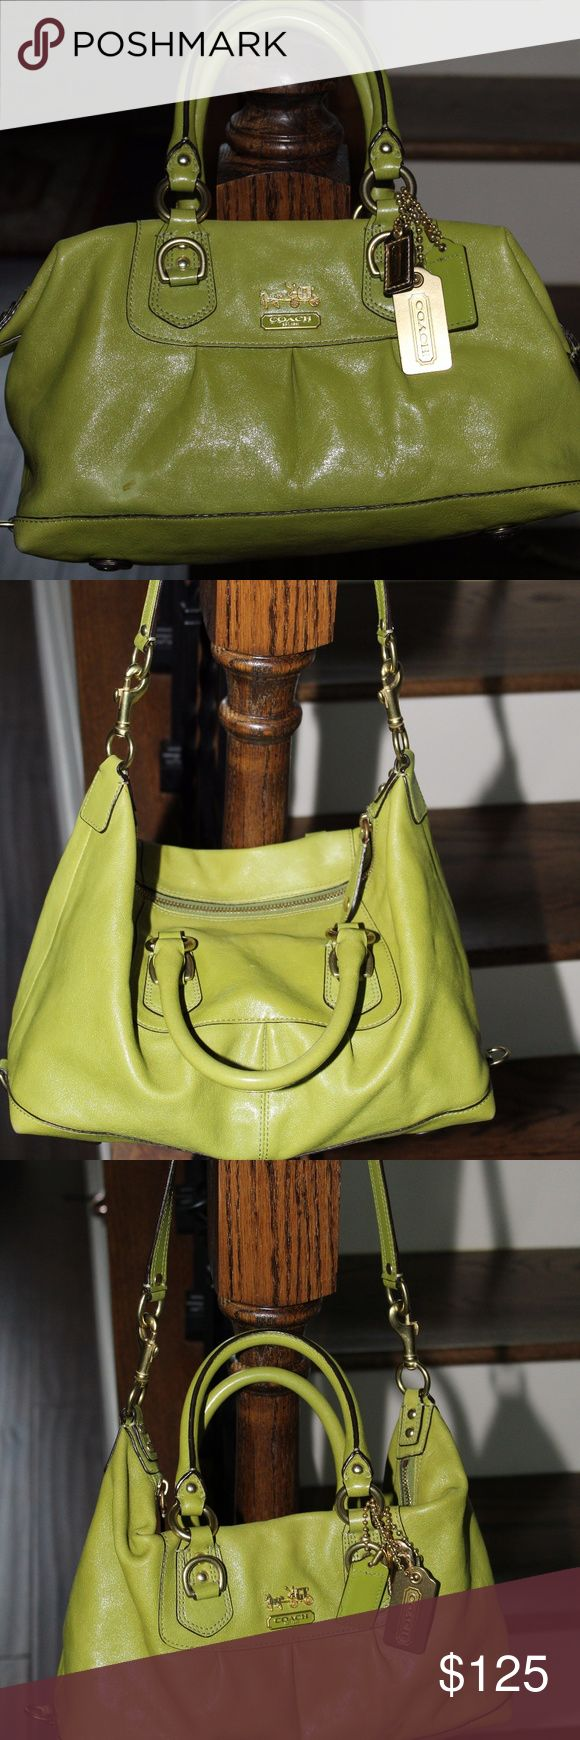 Authentic Coach Sabrina Satchel shoulder bag with Strap Apple Green Vintage Brass Hardware, Classy  bag sides hook to allow strap to be added for shoulder . small spot on front left corner of the bag shown in photo,  small ink barley seen from carrying. Reasonable offers excepted Approx: 8X13X5 Coach Bags Satchels